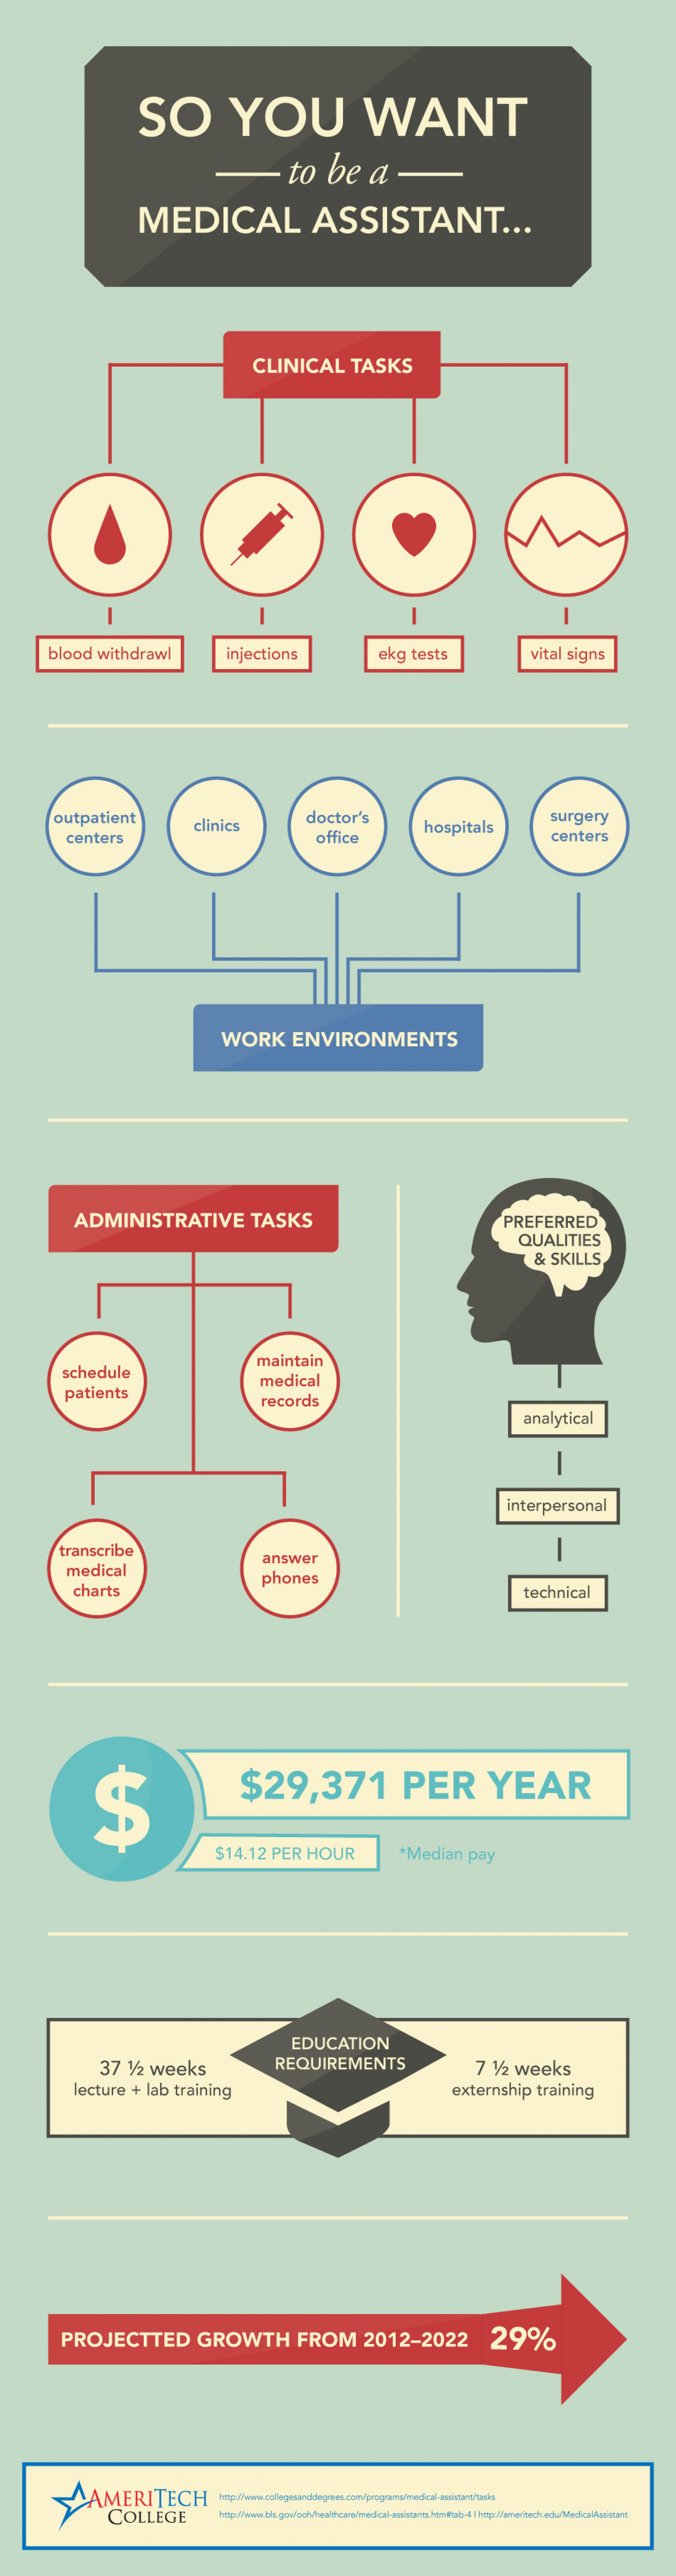 So You Want To Be A Medical Assistant? Infographic